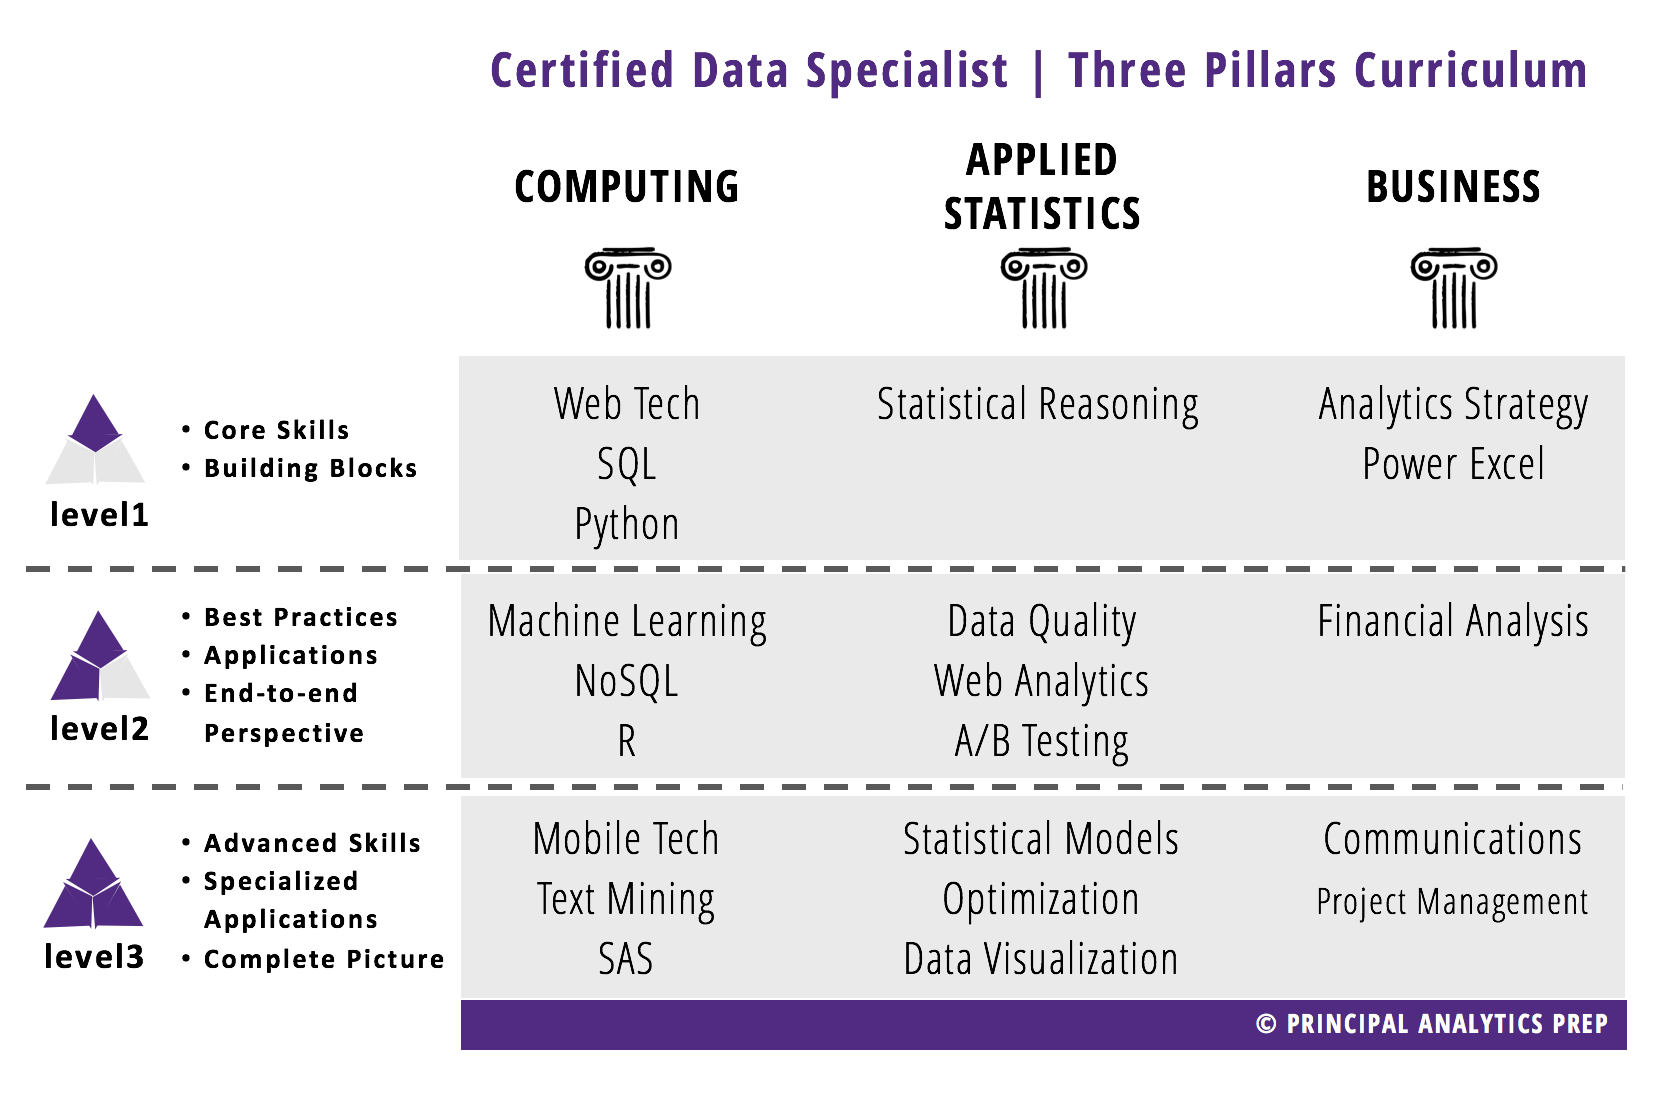 Principal Analytics Prep developed the unique Three Pillars curriculum, balancing Computing, Applied Statistics, and Business courses. Full-time and Part-time schedules are available.